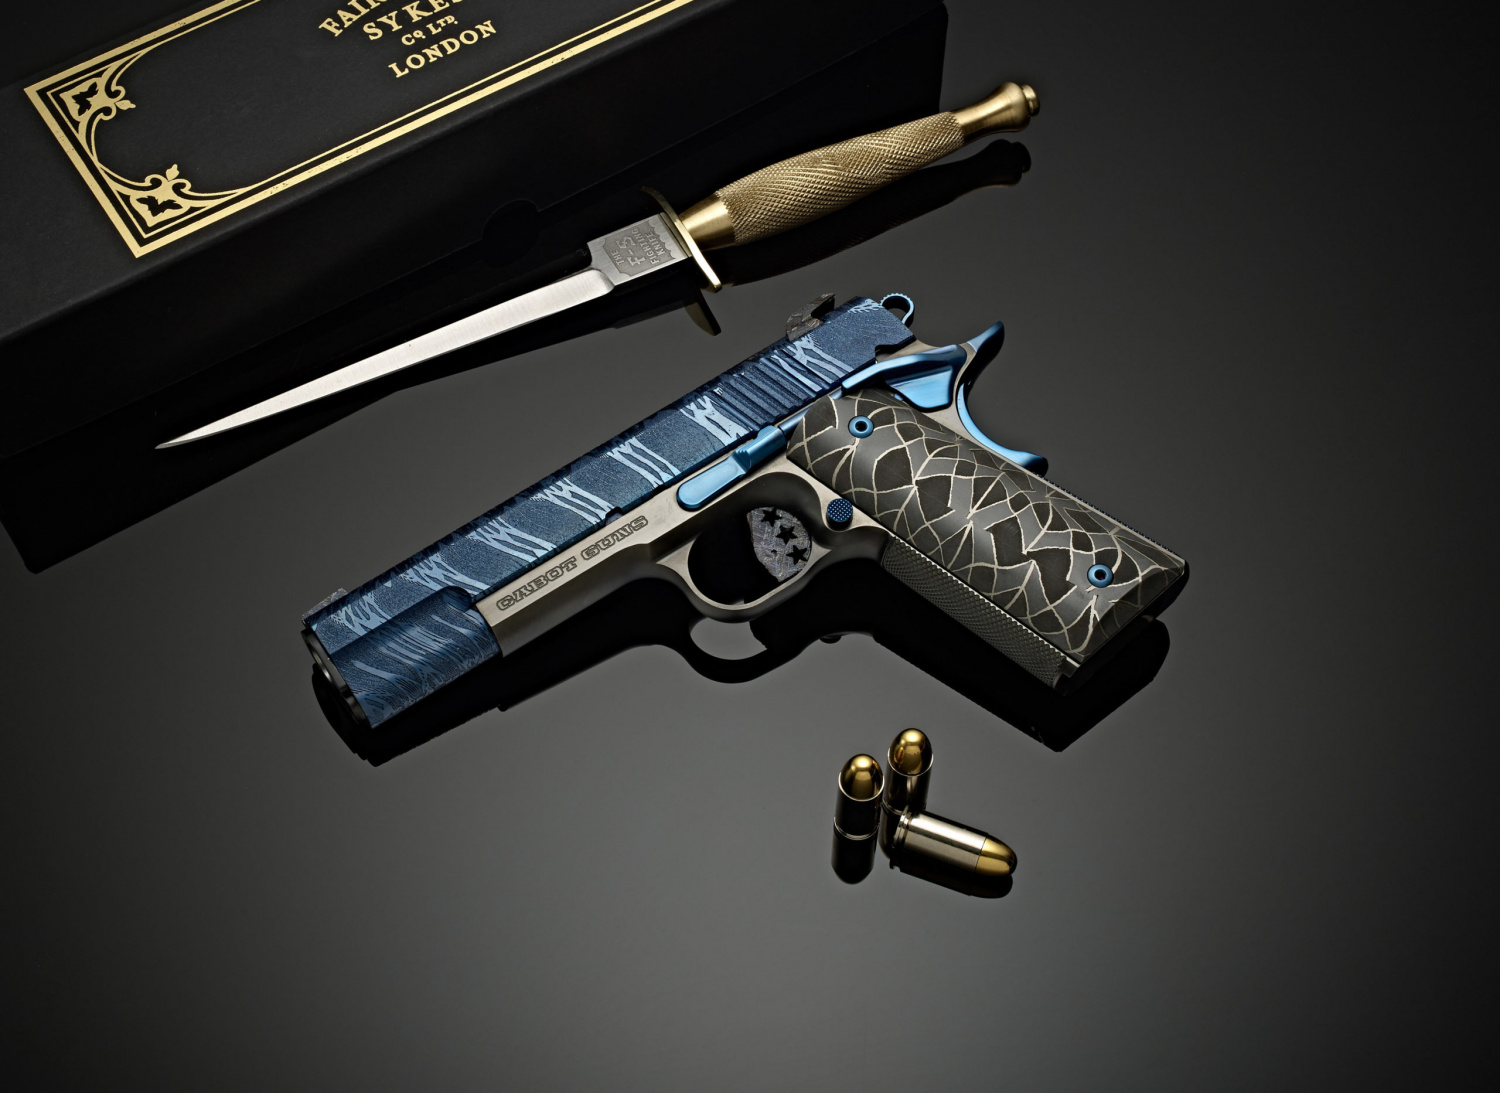 Cabot Guns 10 Year Anniversary Collection - The Art of Metal (1)